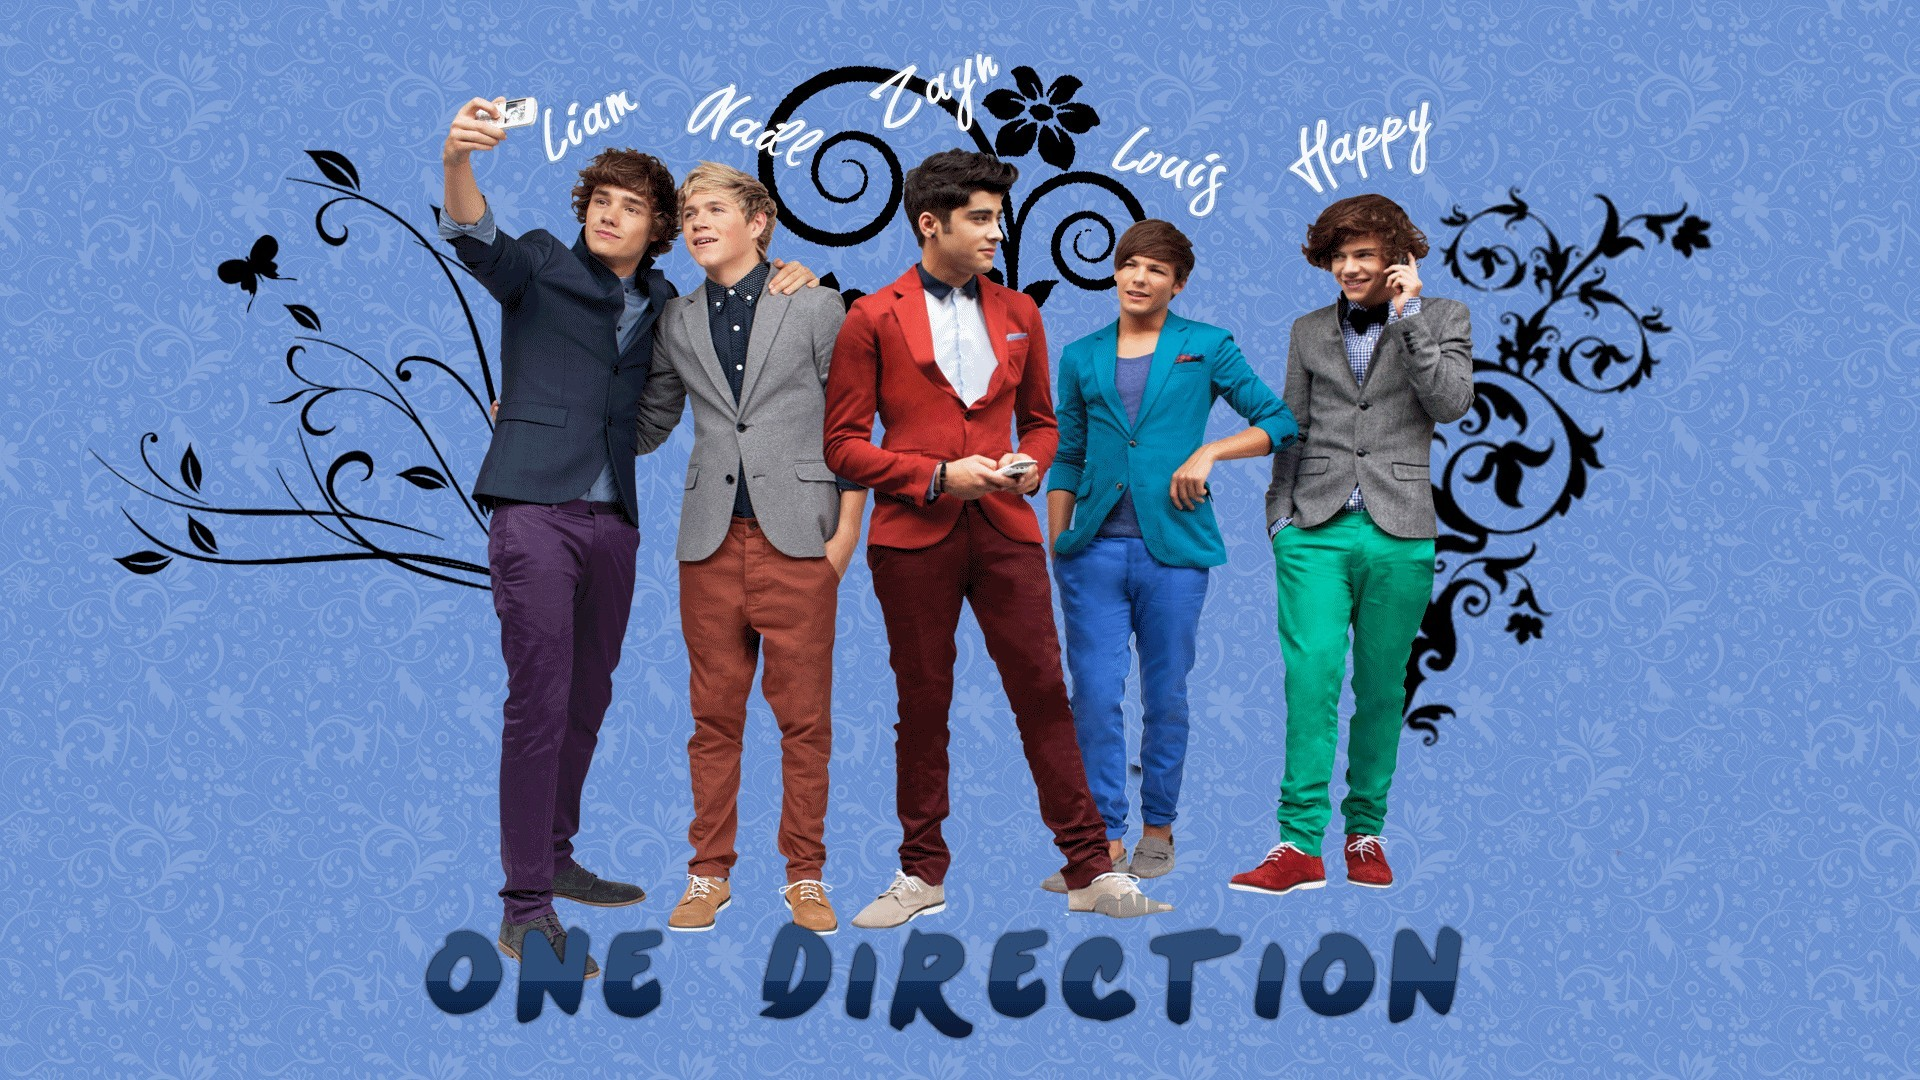 One Direction Hd Wallpaper - One Direction Desktop Wallpaper Name - HD Wallpaper